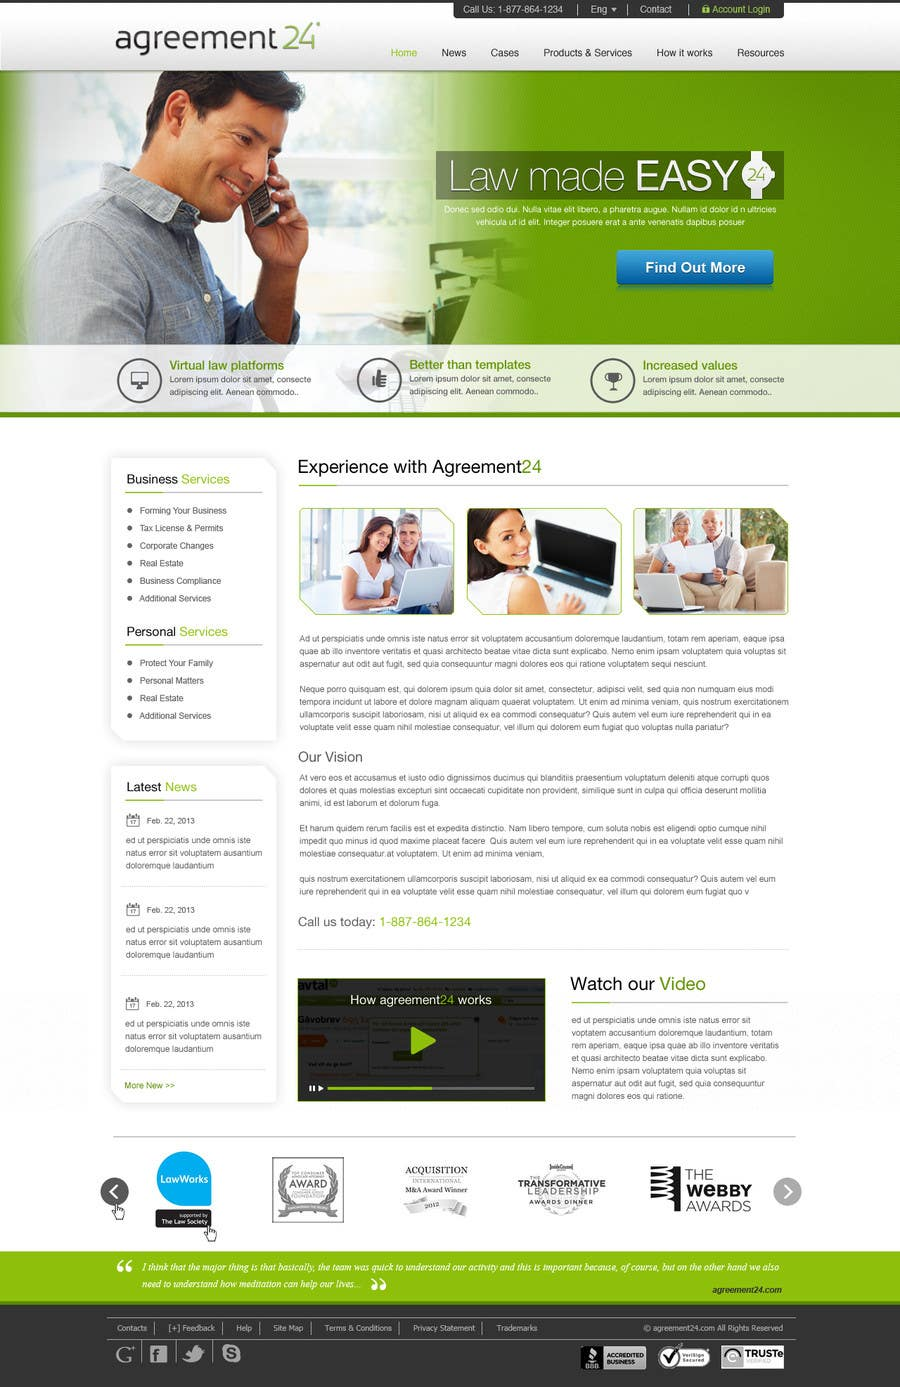 #10 for Graphic redesign - FRONT PAGE and sub template - agreement24.com website by herick05